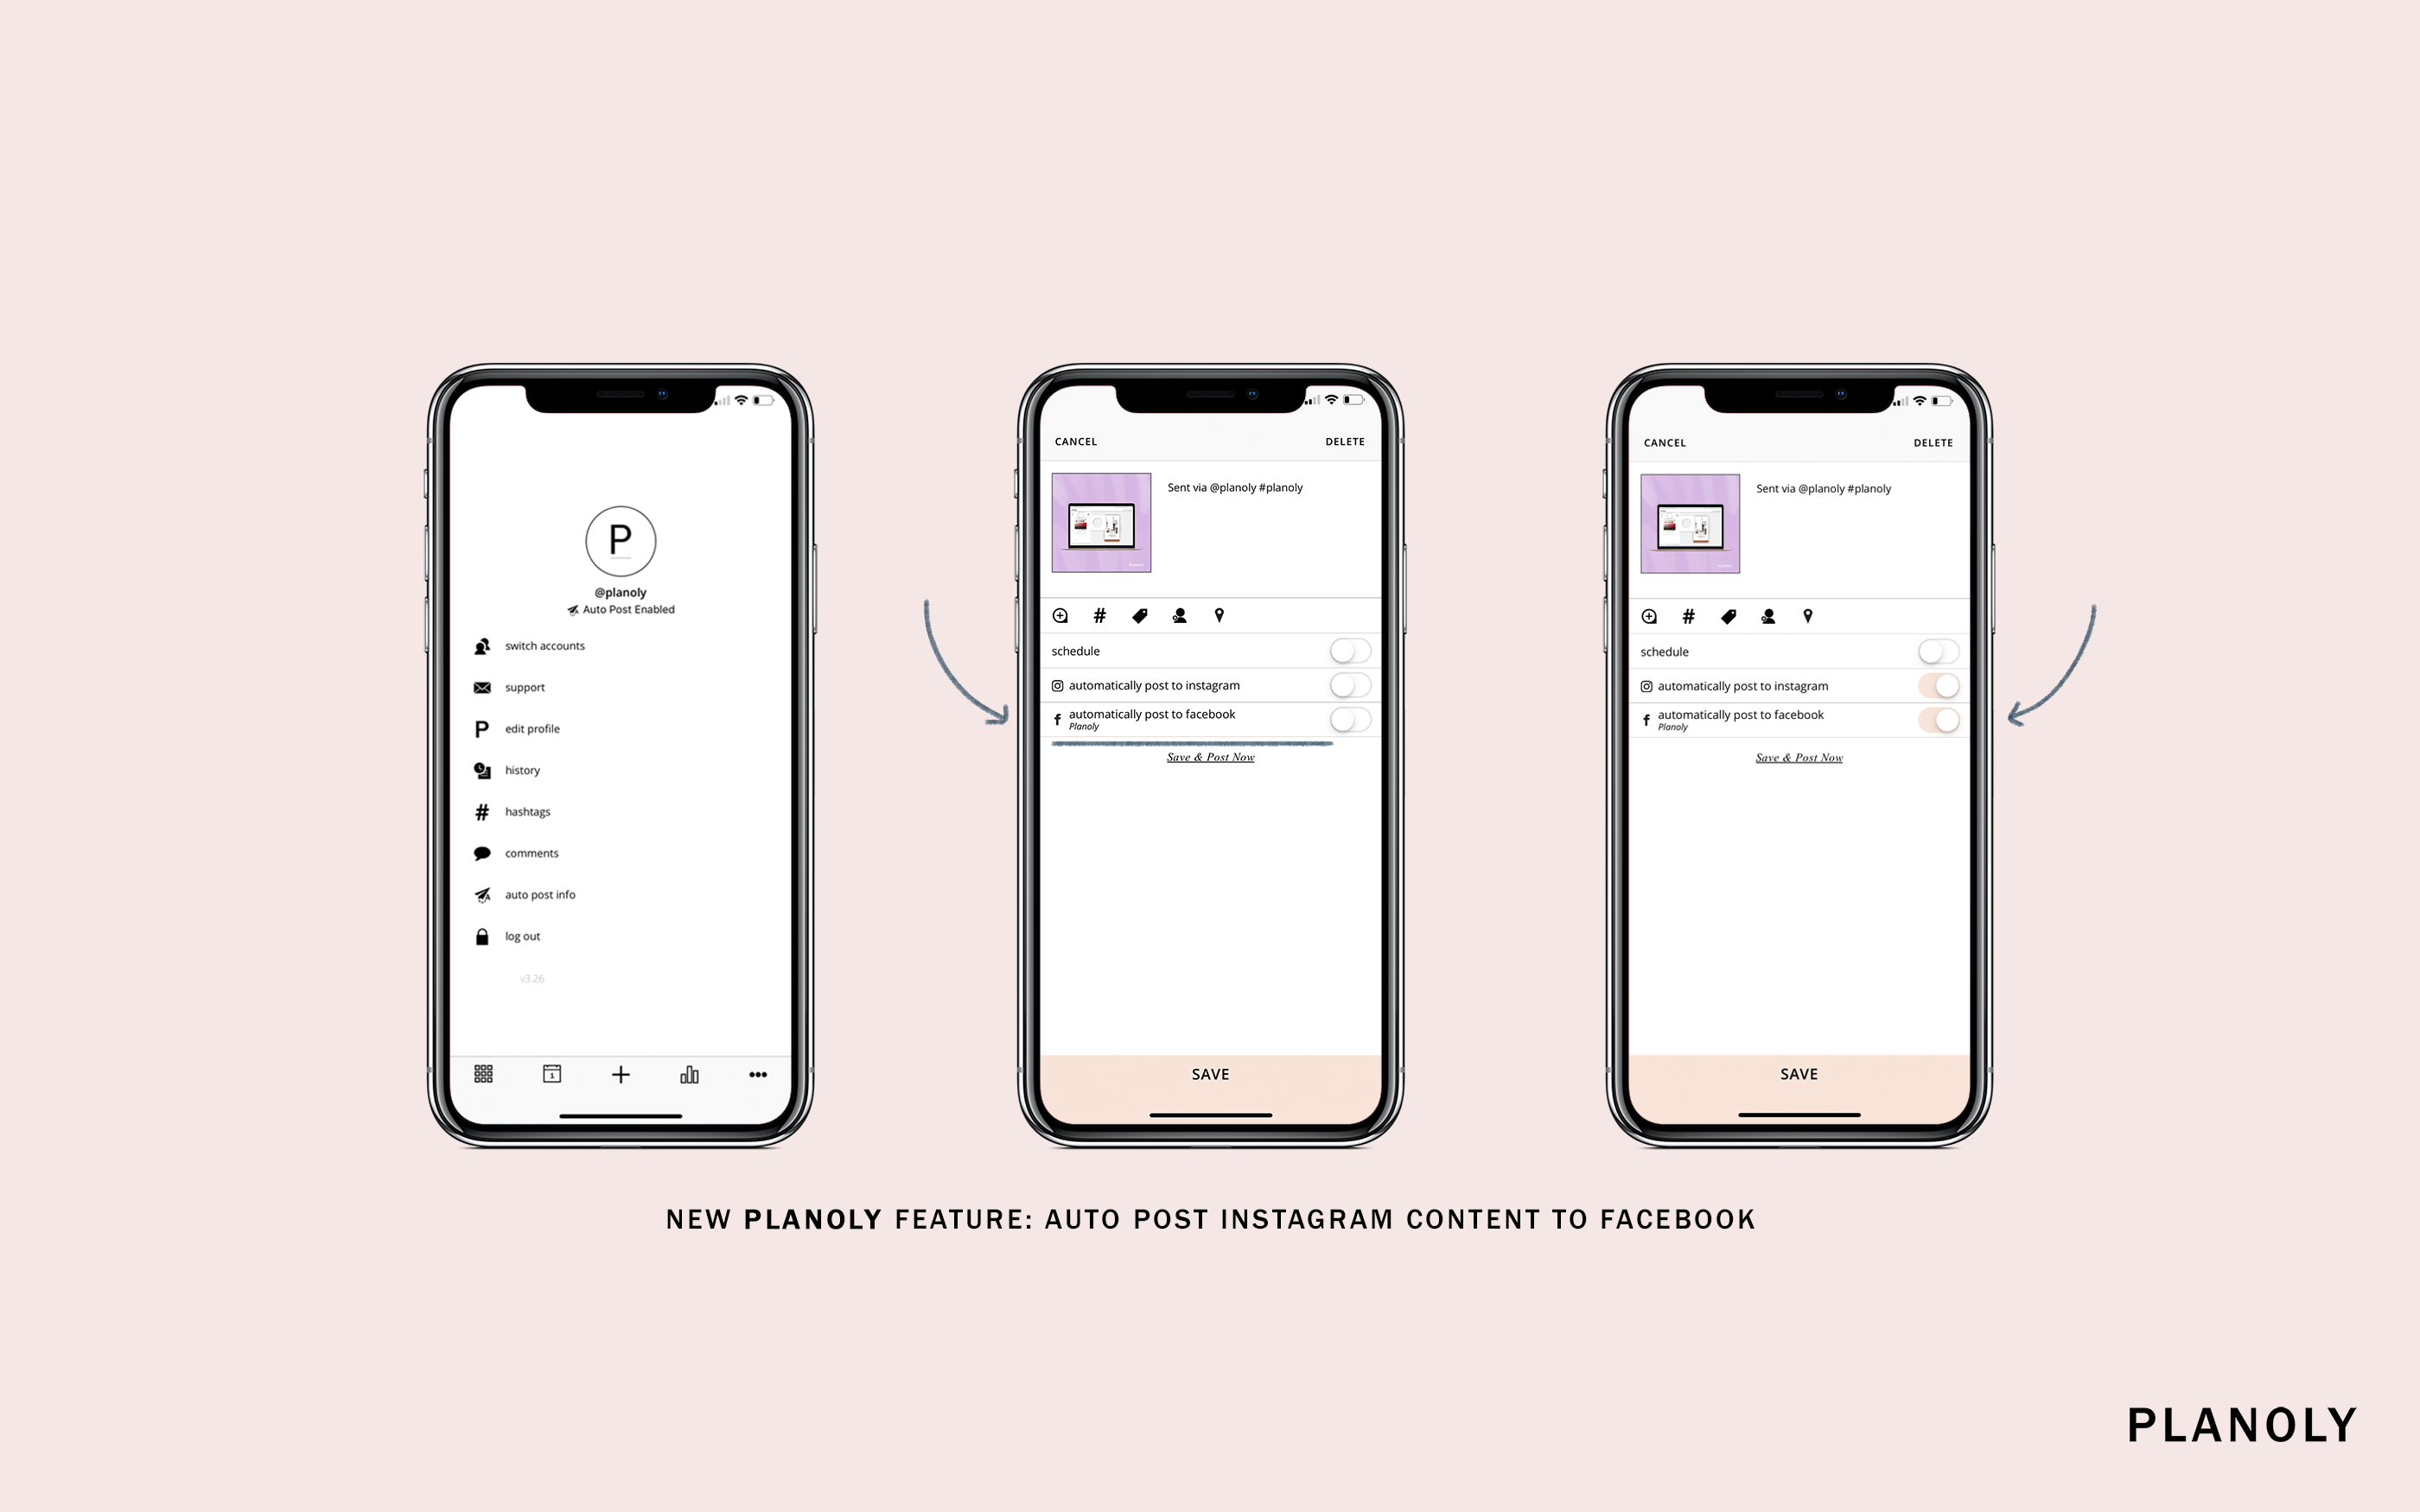 New PLANOLY Feature: Auto Post Instagram Content to Facebook